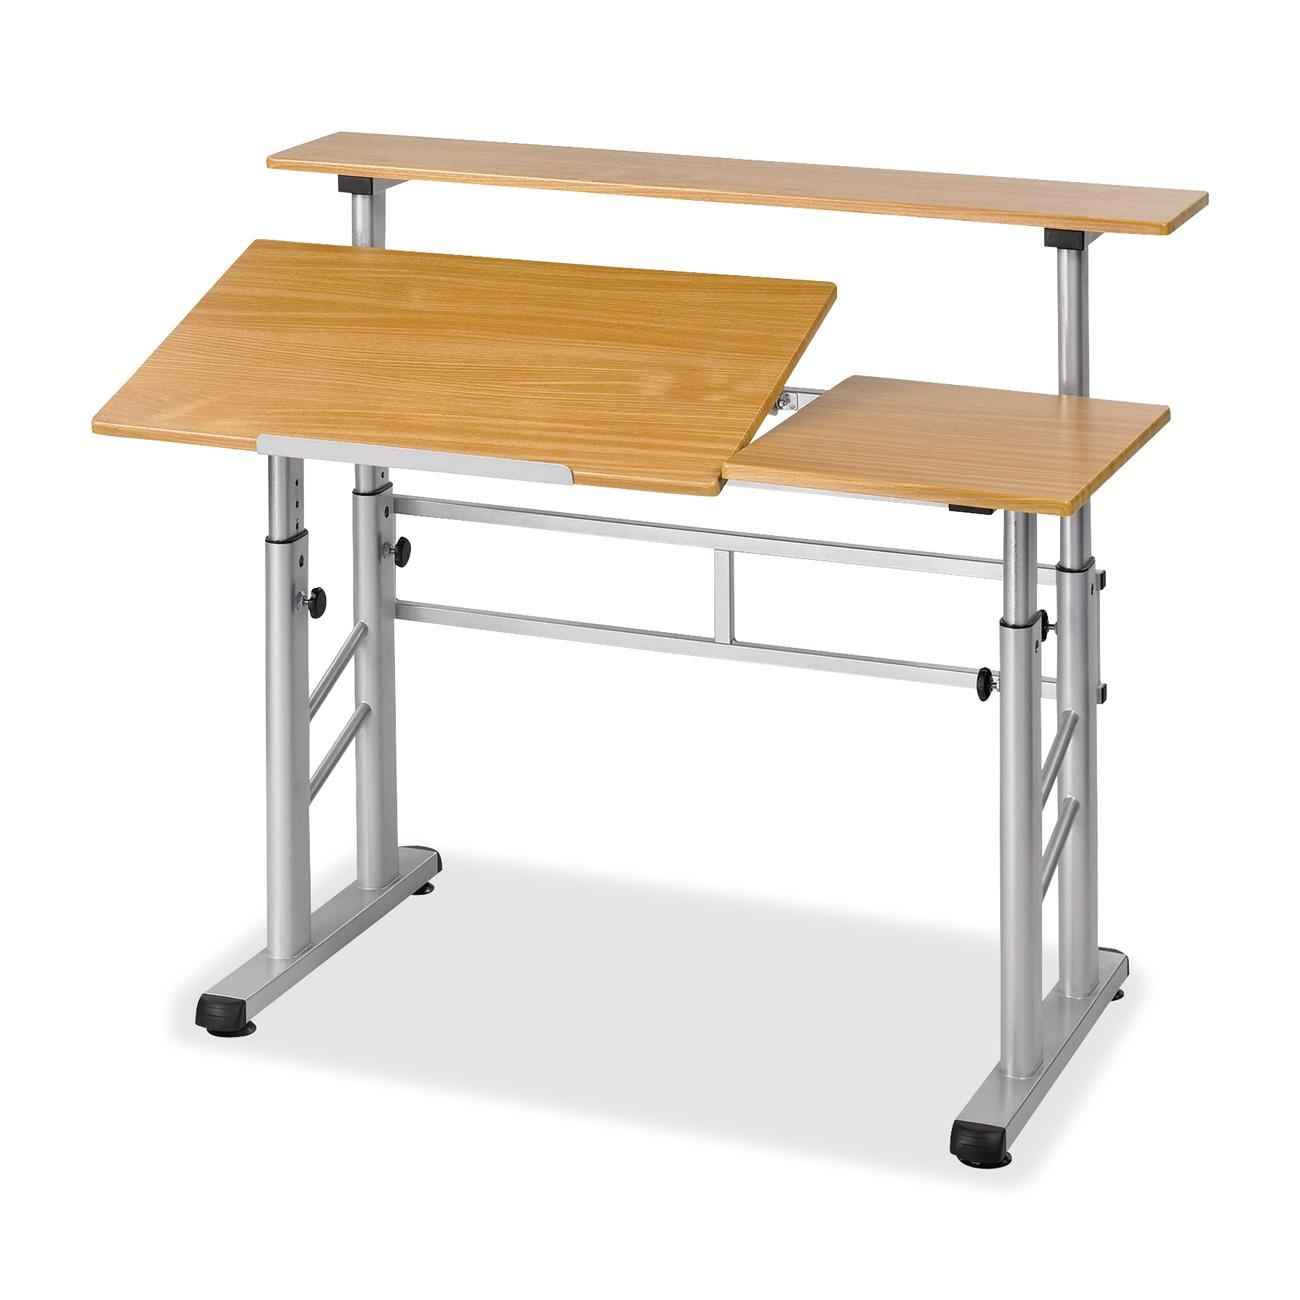 Drafting Table Design Adjustable Drafting Table Plans Office Furniture